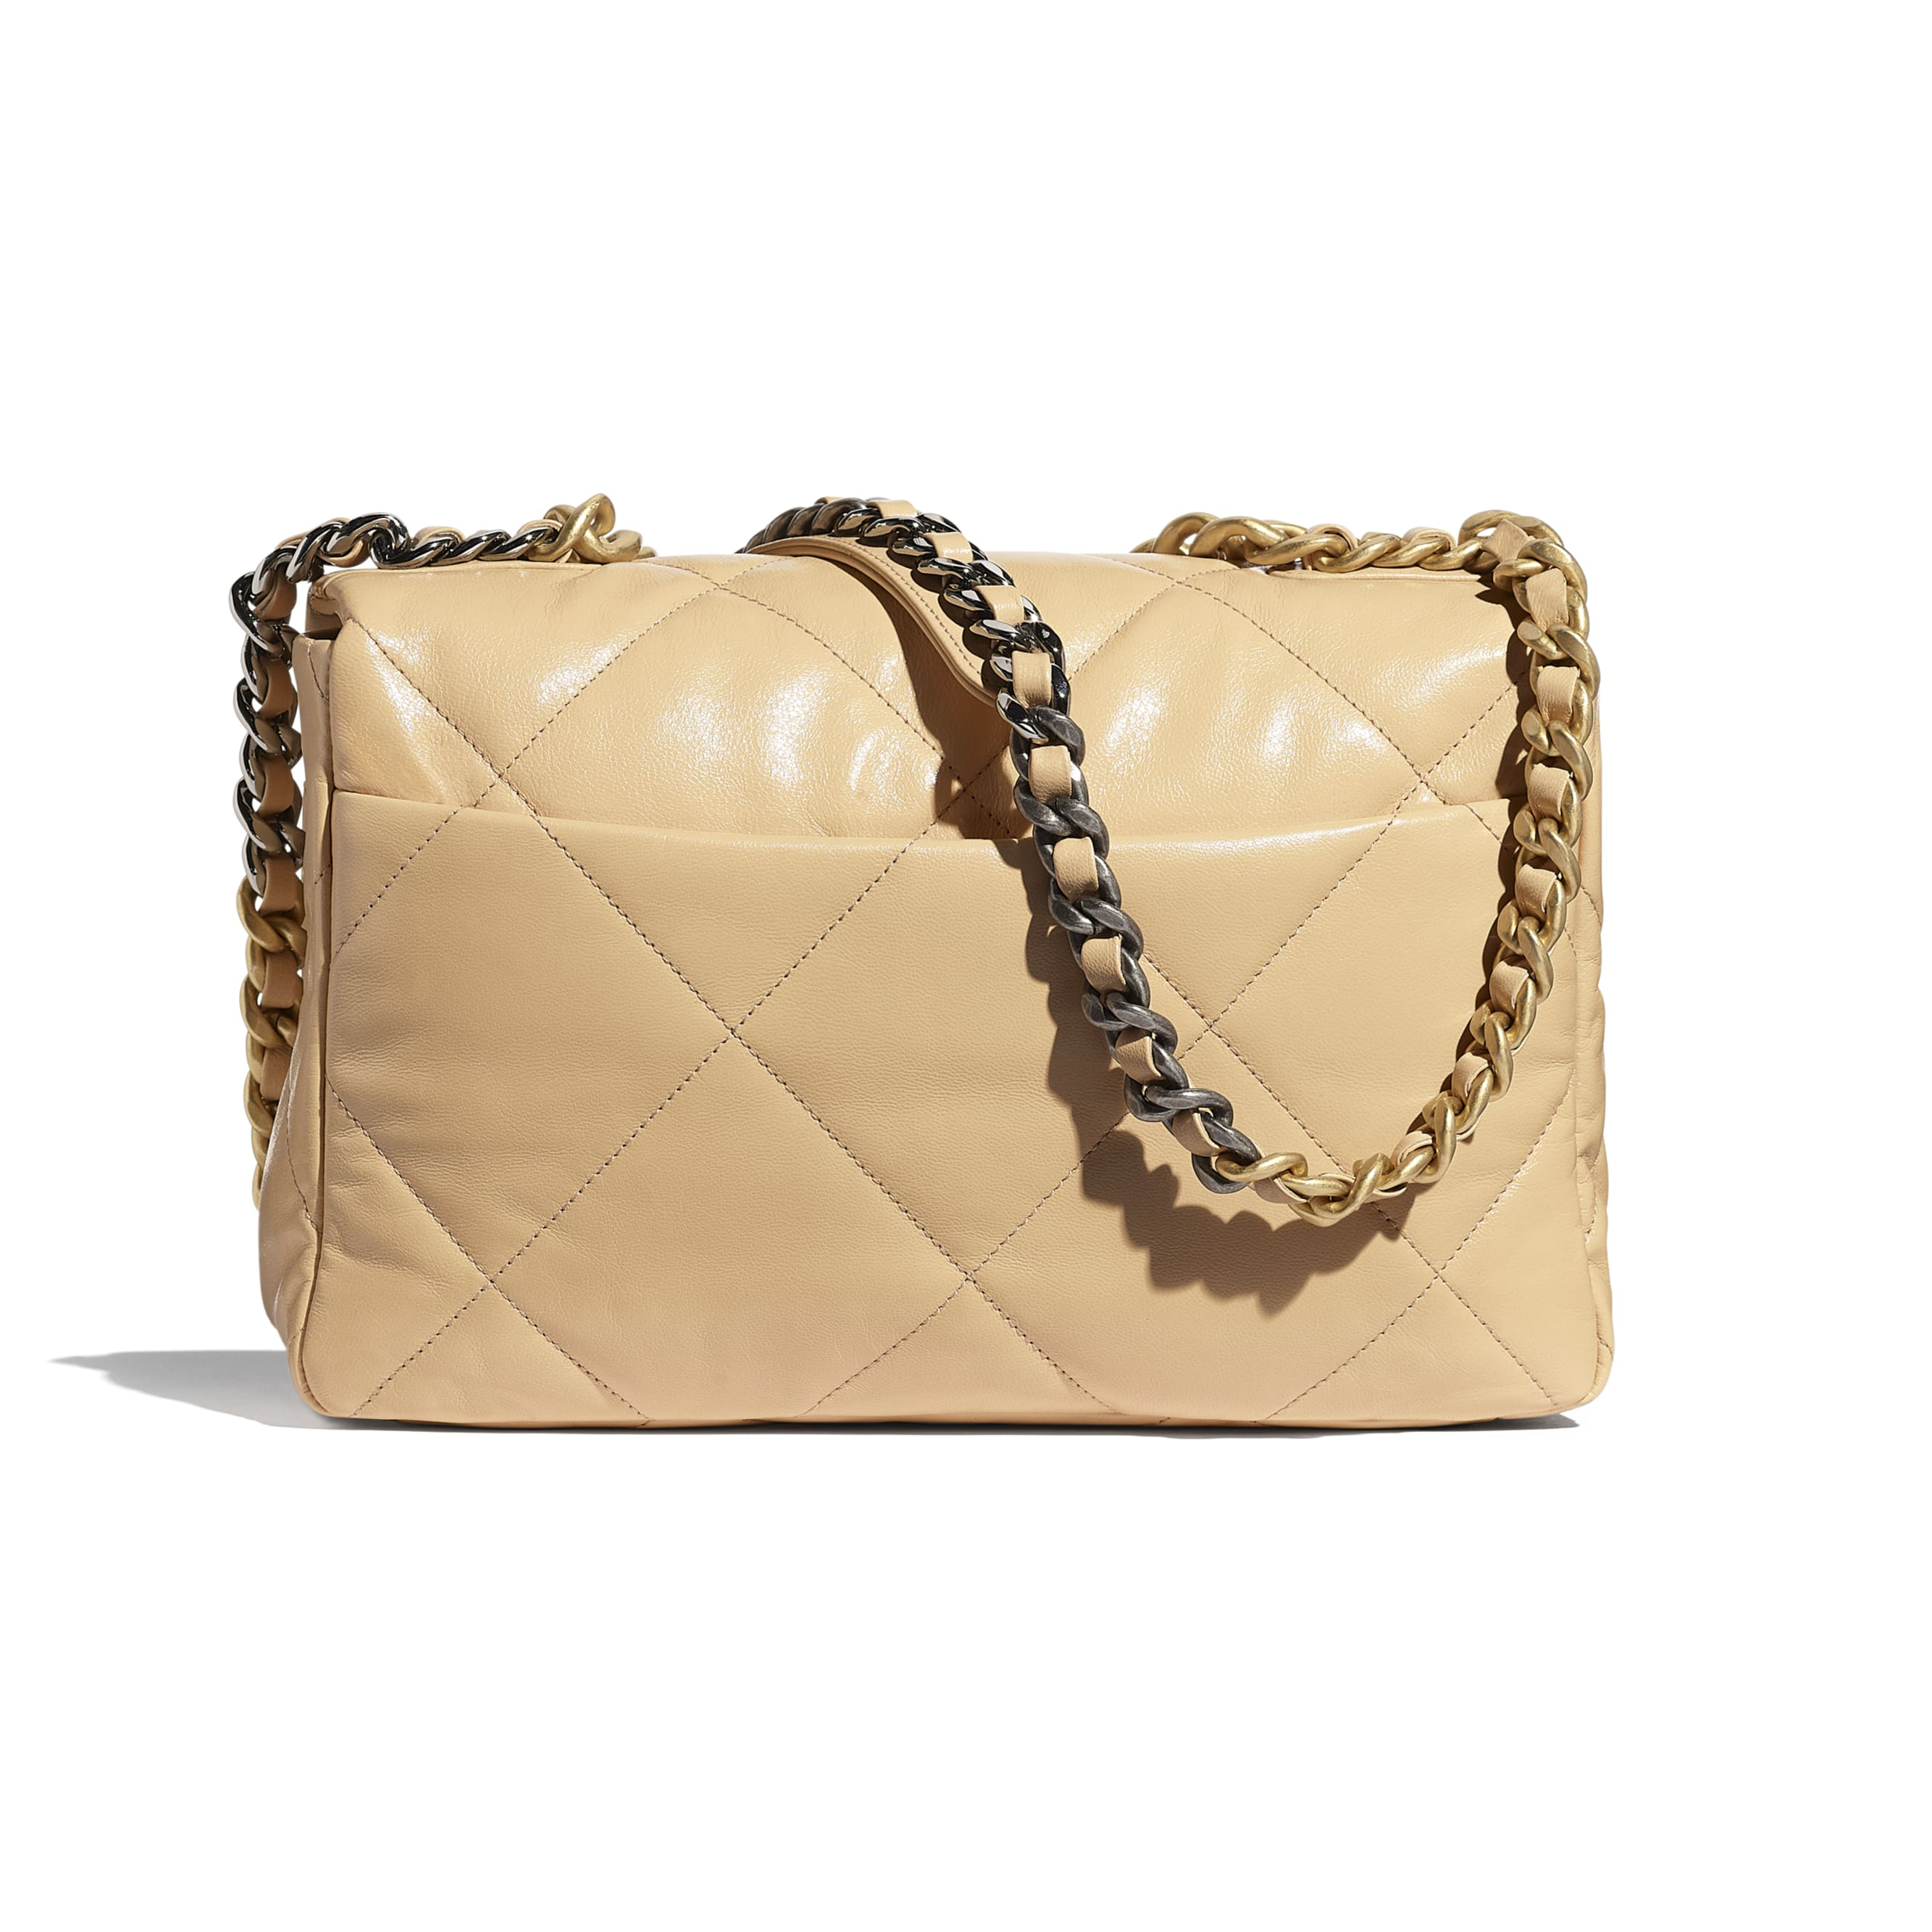 CHANEL 19 Large Flap Bag - Beige - Shiny Goatskin, Gold-Tone, Silver-Tone & Ruthenium-Finish Metal - CHANEL - Alternative view - see standard sized version